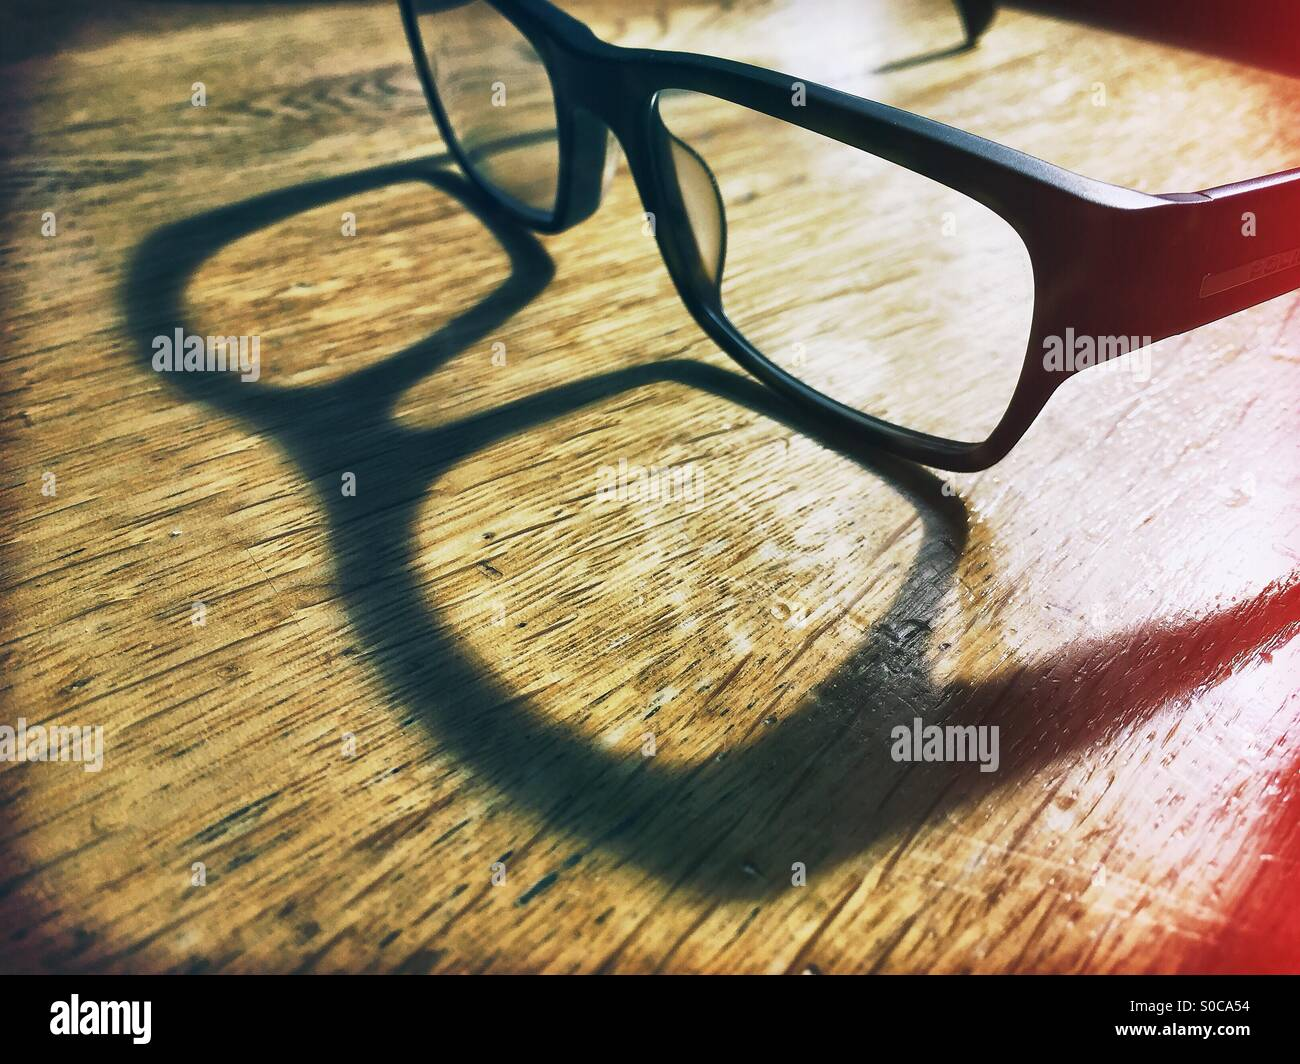 A pair of thick rimmed reading glasses sitting on a wooden desk casting a shadow in sunlight. - Stock Image